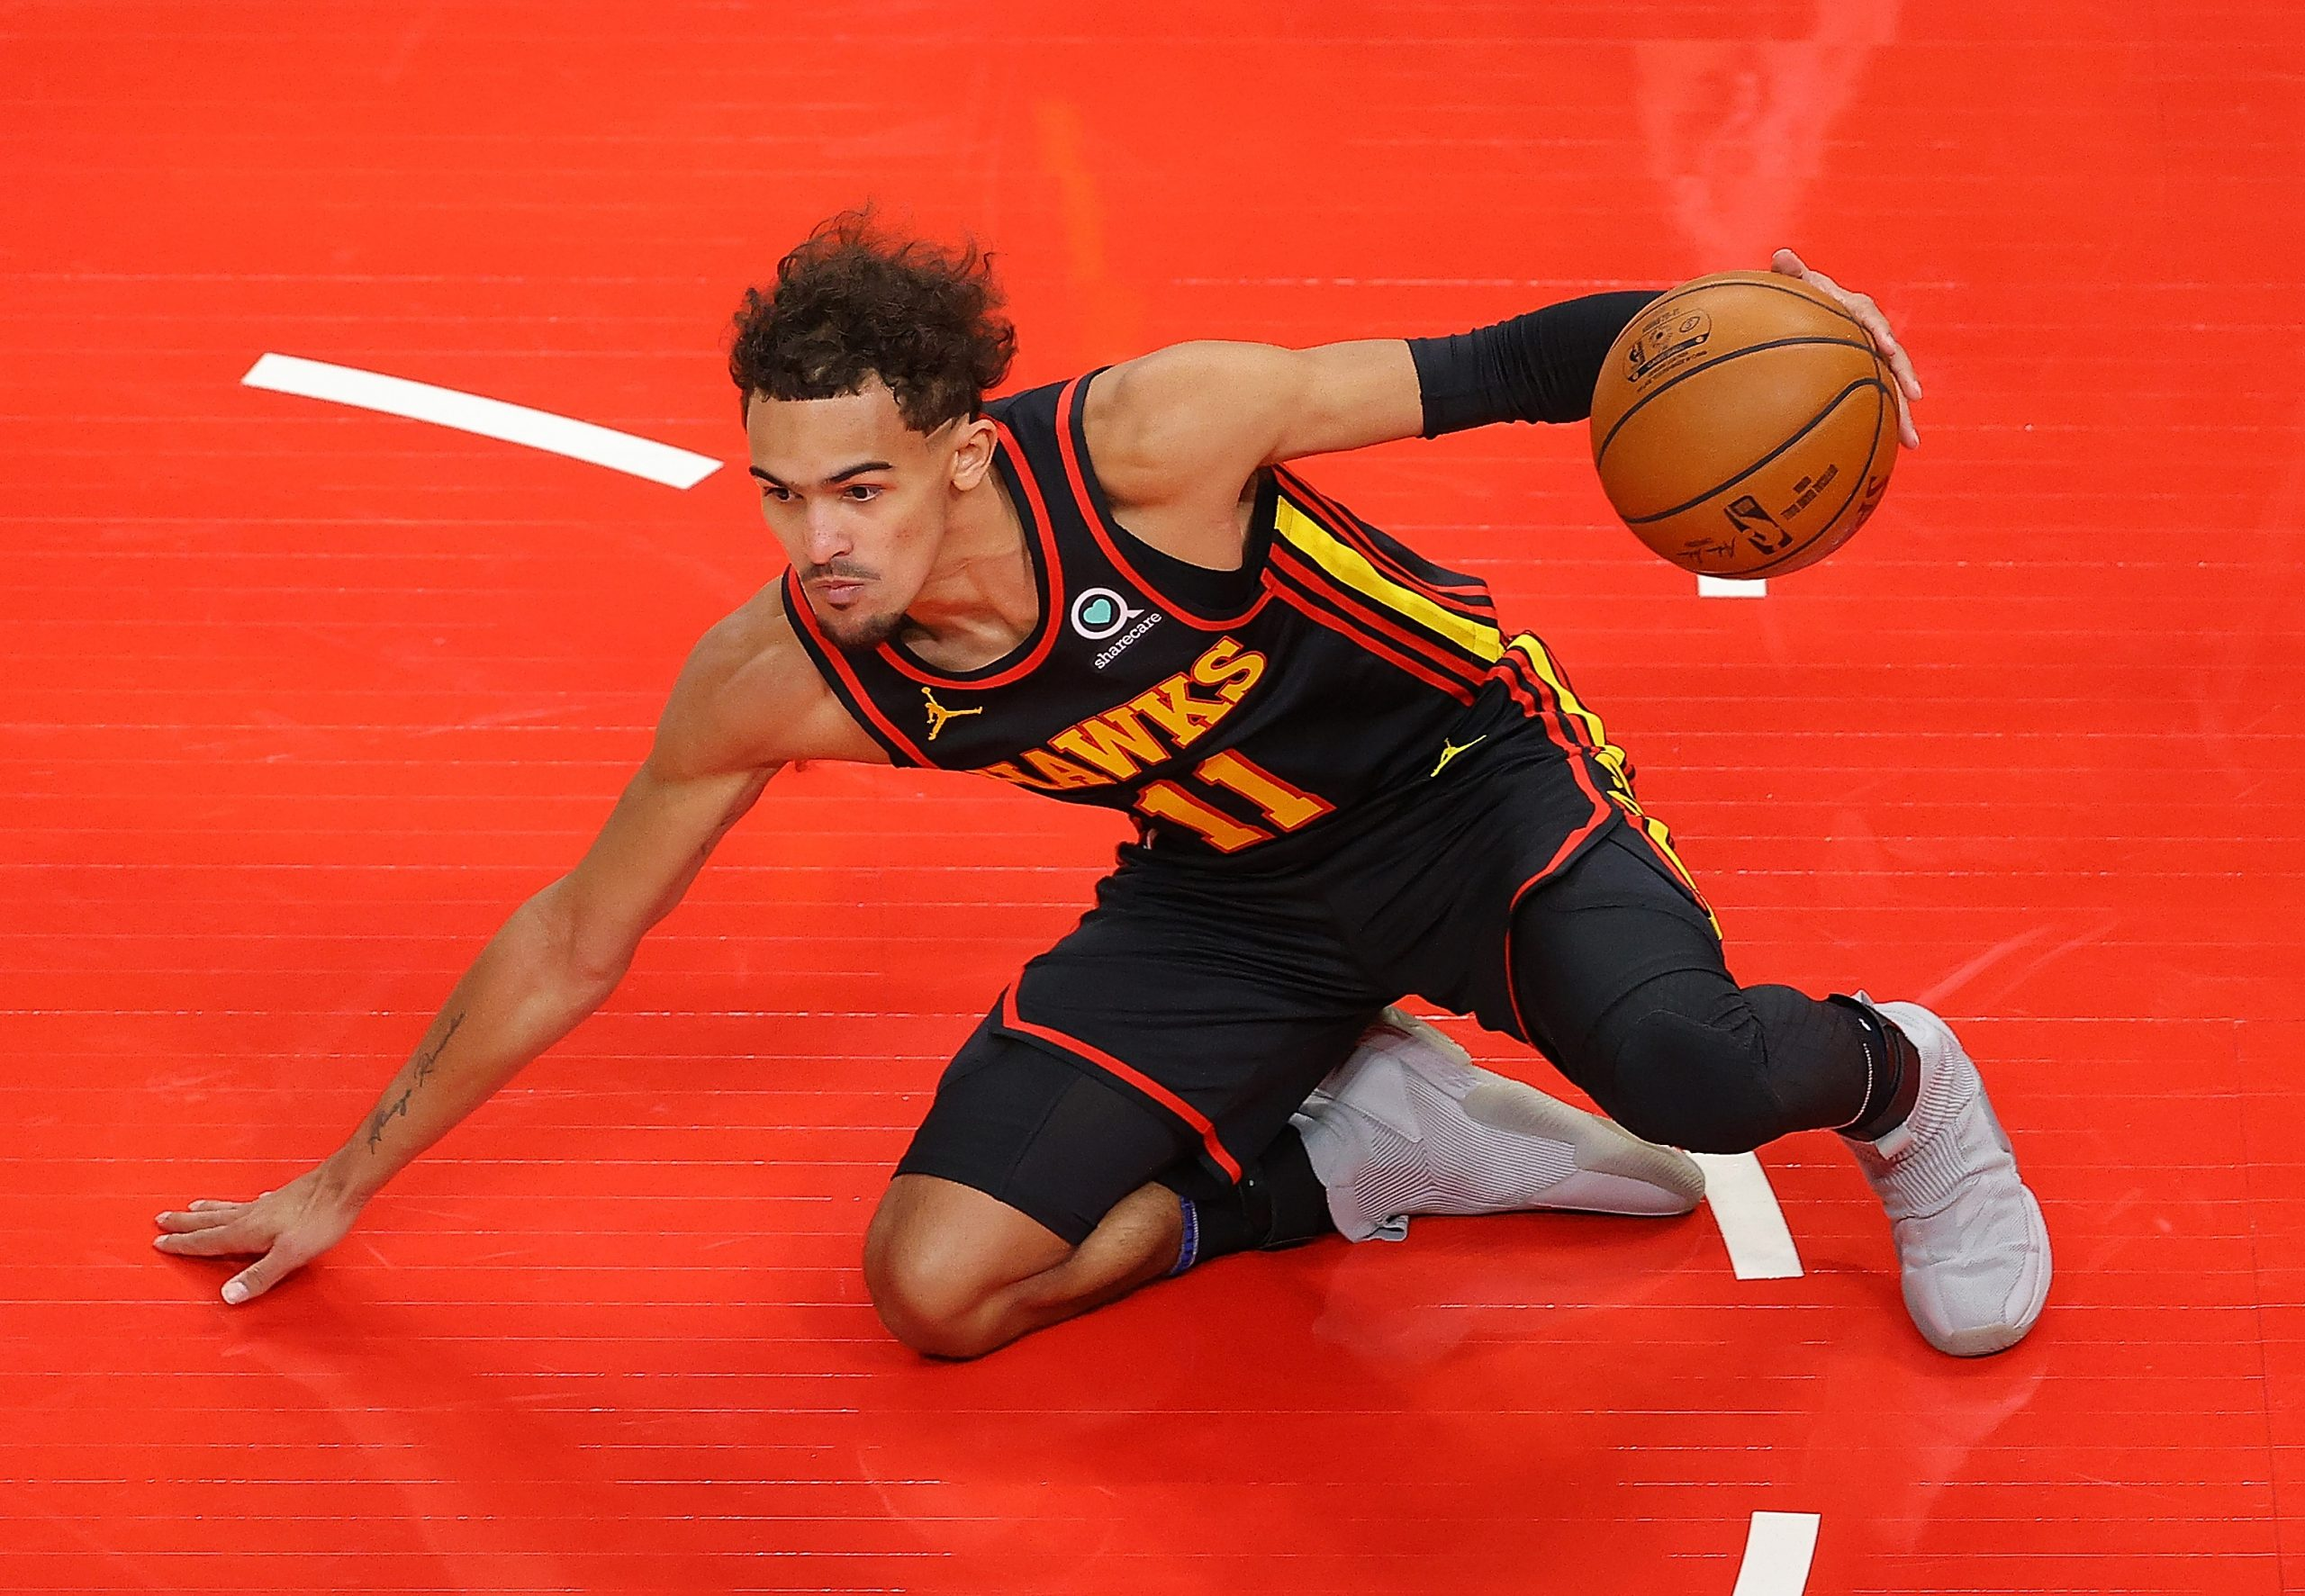 ATLANTA, GEORGIA - FEBRUARY 01:   Trae Young #11 of the Atlanta Hawks slips to the floor as he dribbles against the Los Angeles Lakers during the first half at State Farm Arena on February 01, 2021 in Atlanta, Georgia.  NOTE TO USER: User expressly acknowledges and agrees that, by downloading and or using this photograph, User is consenting to the terms and conditions of the Getty Images License Agreement.  (Photo by Kevin C. Cox/Getty Images)